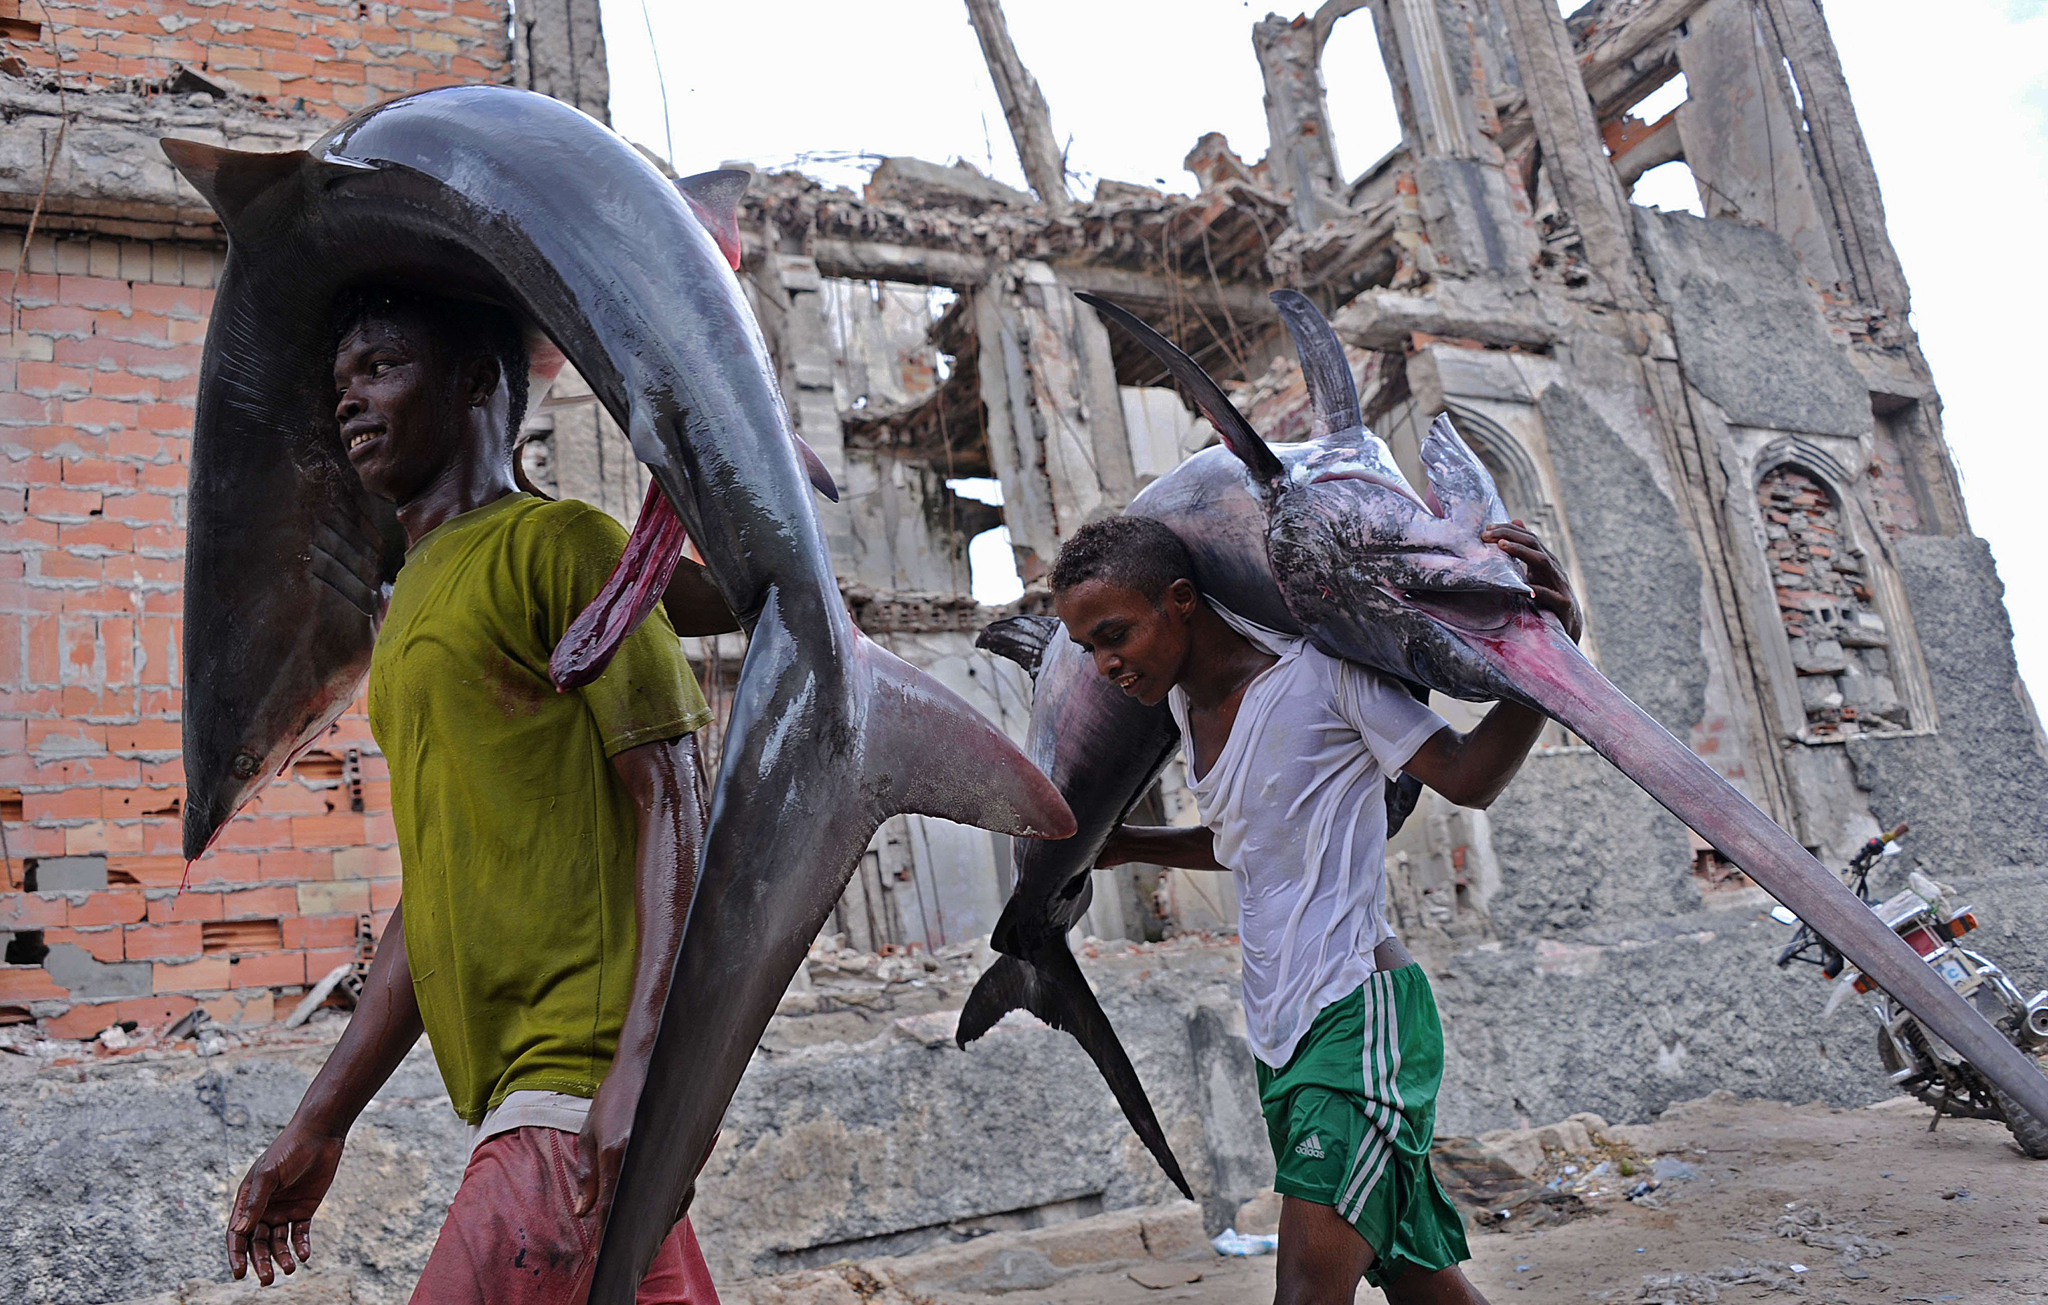 Porters carry a shark (L) and a Marlin (R) to the local market in Hamarweyne near the port of Mogadishu, Somalia.